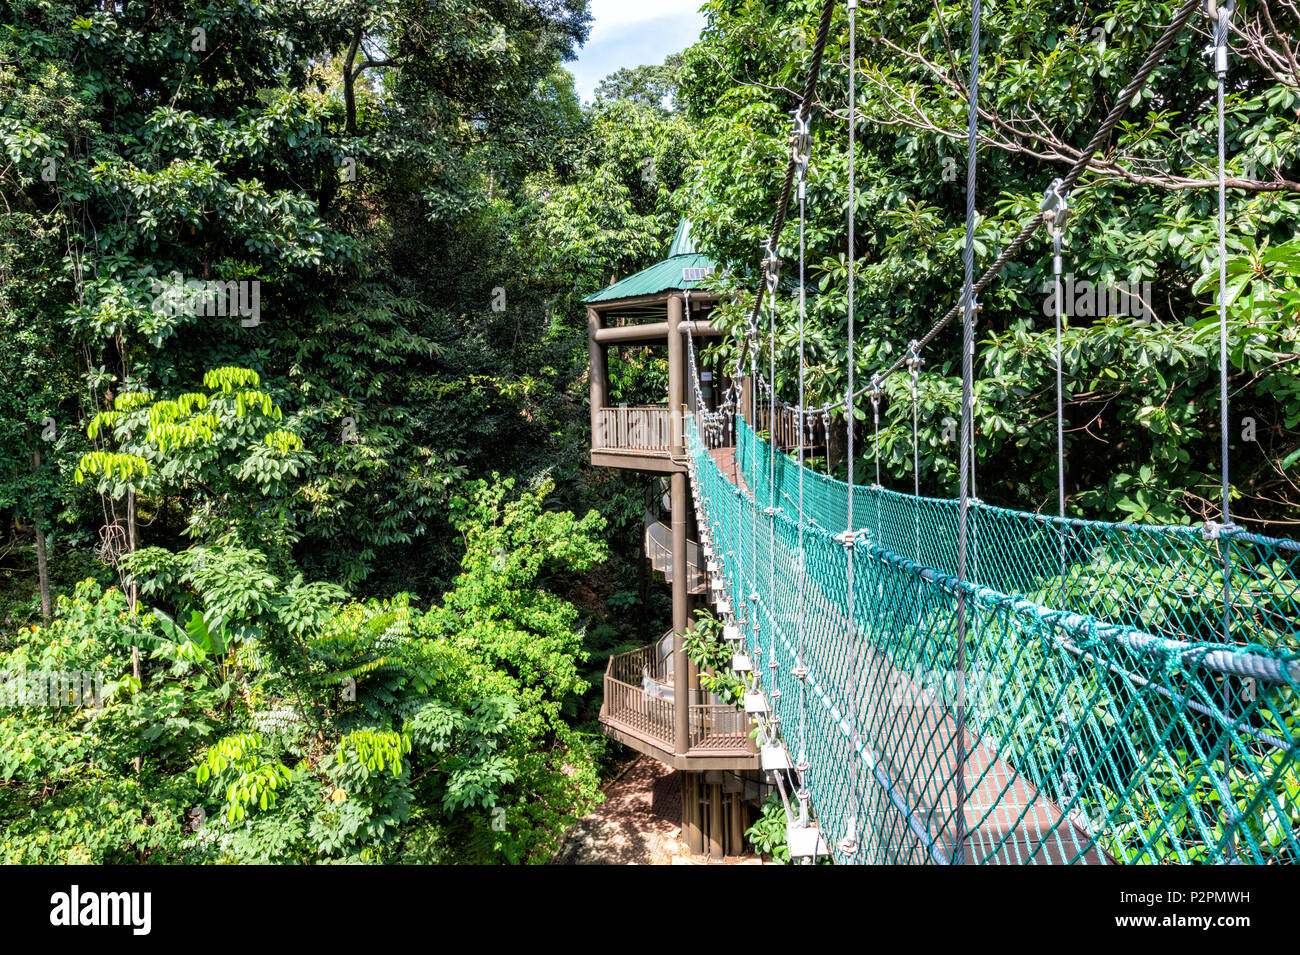 The KL Forest Eco Park Canopy Walk in Kuala Lumpur Malaysia & The KL Forest Eco Park Canopy Walk in Kuala Lumpur Malaysia Stock ...